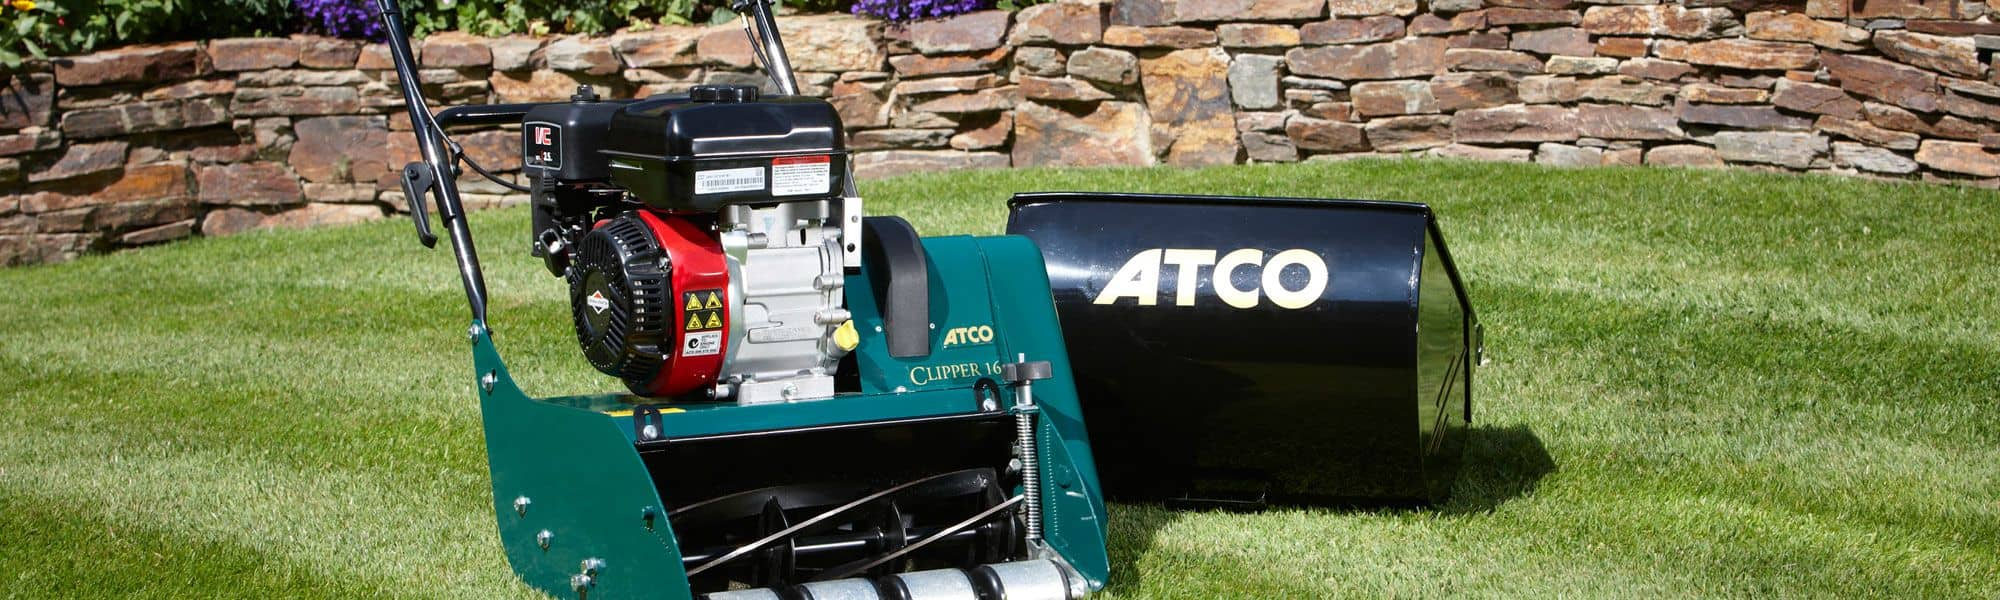 Atco cylinder lawnmower